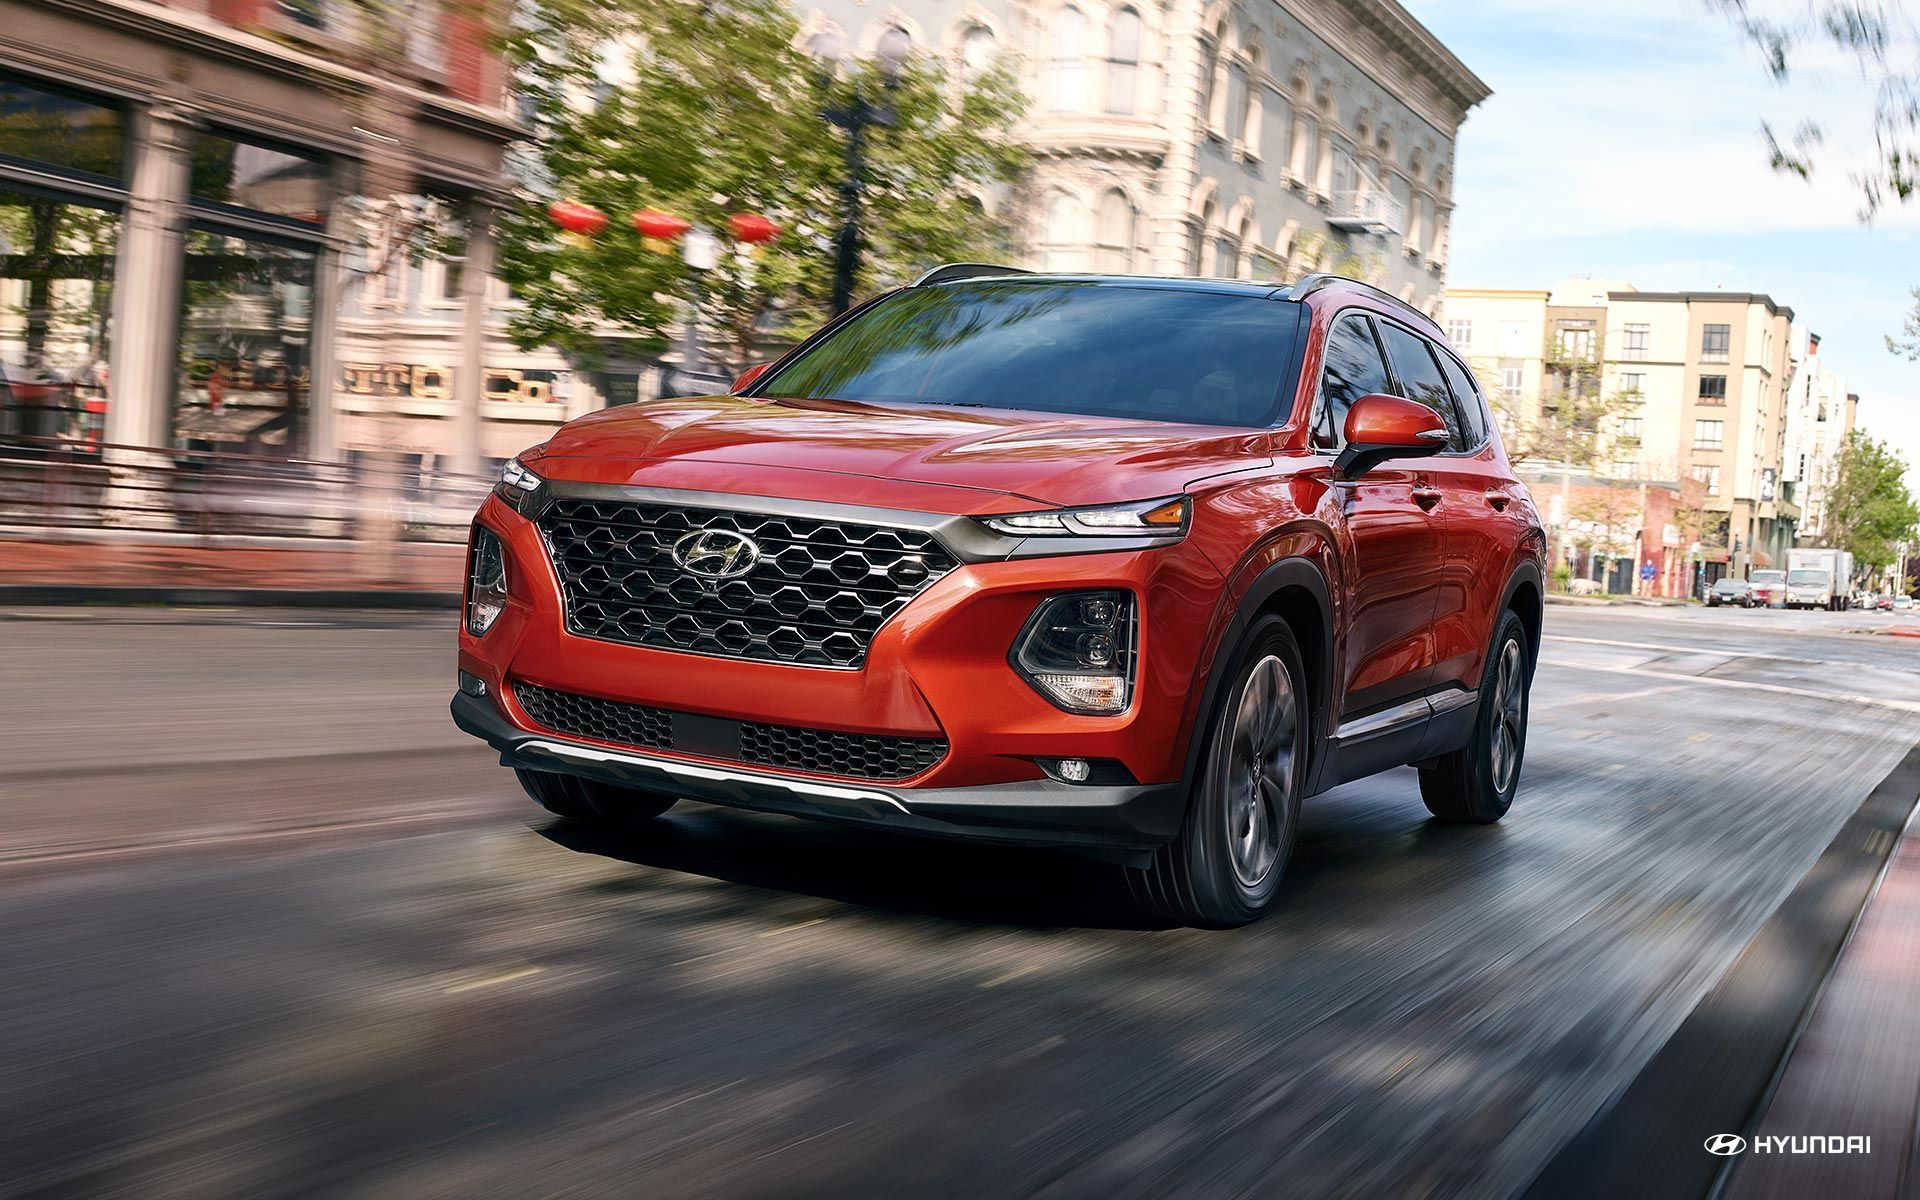 Three Things to Know About the 2019 Hyundai Santa Fe